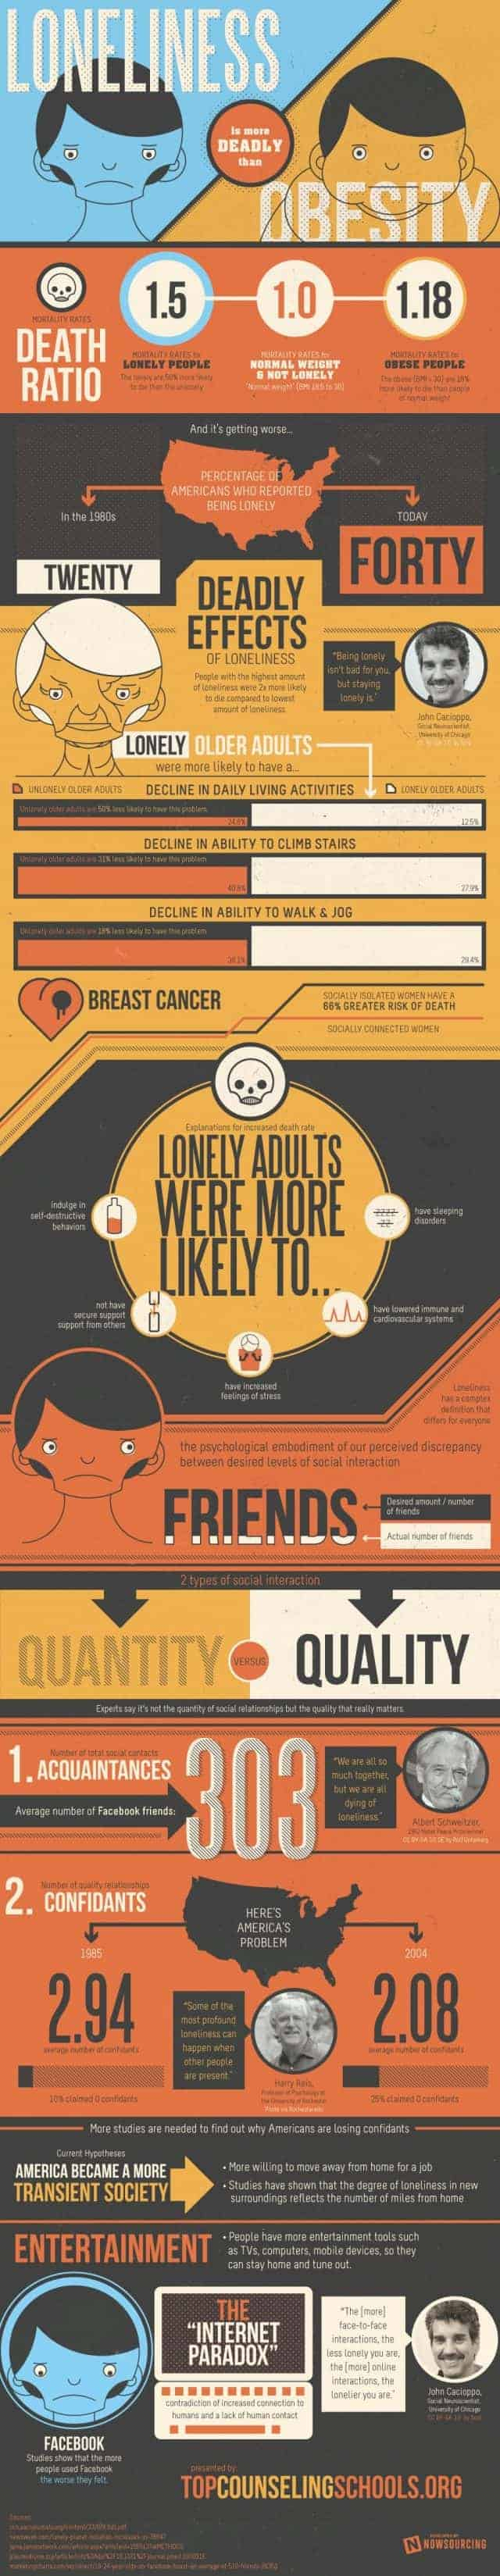 Loneliness Is More Deadly Than Obesity Infographic